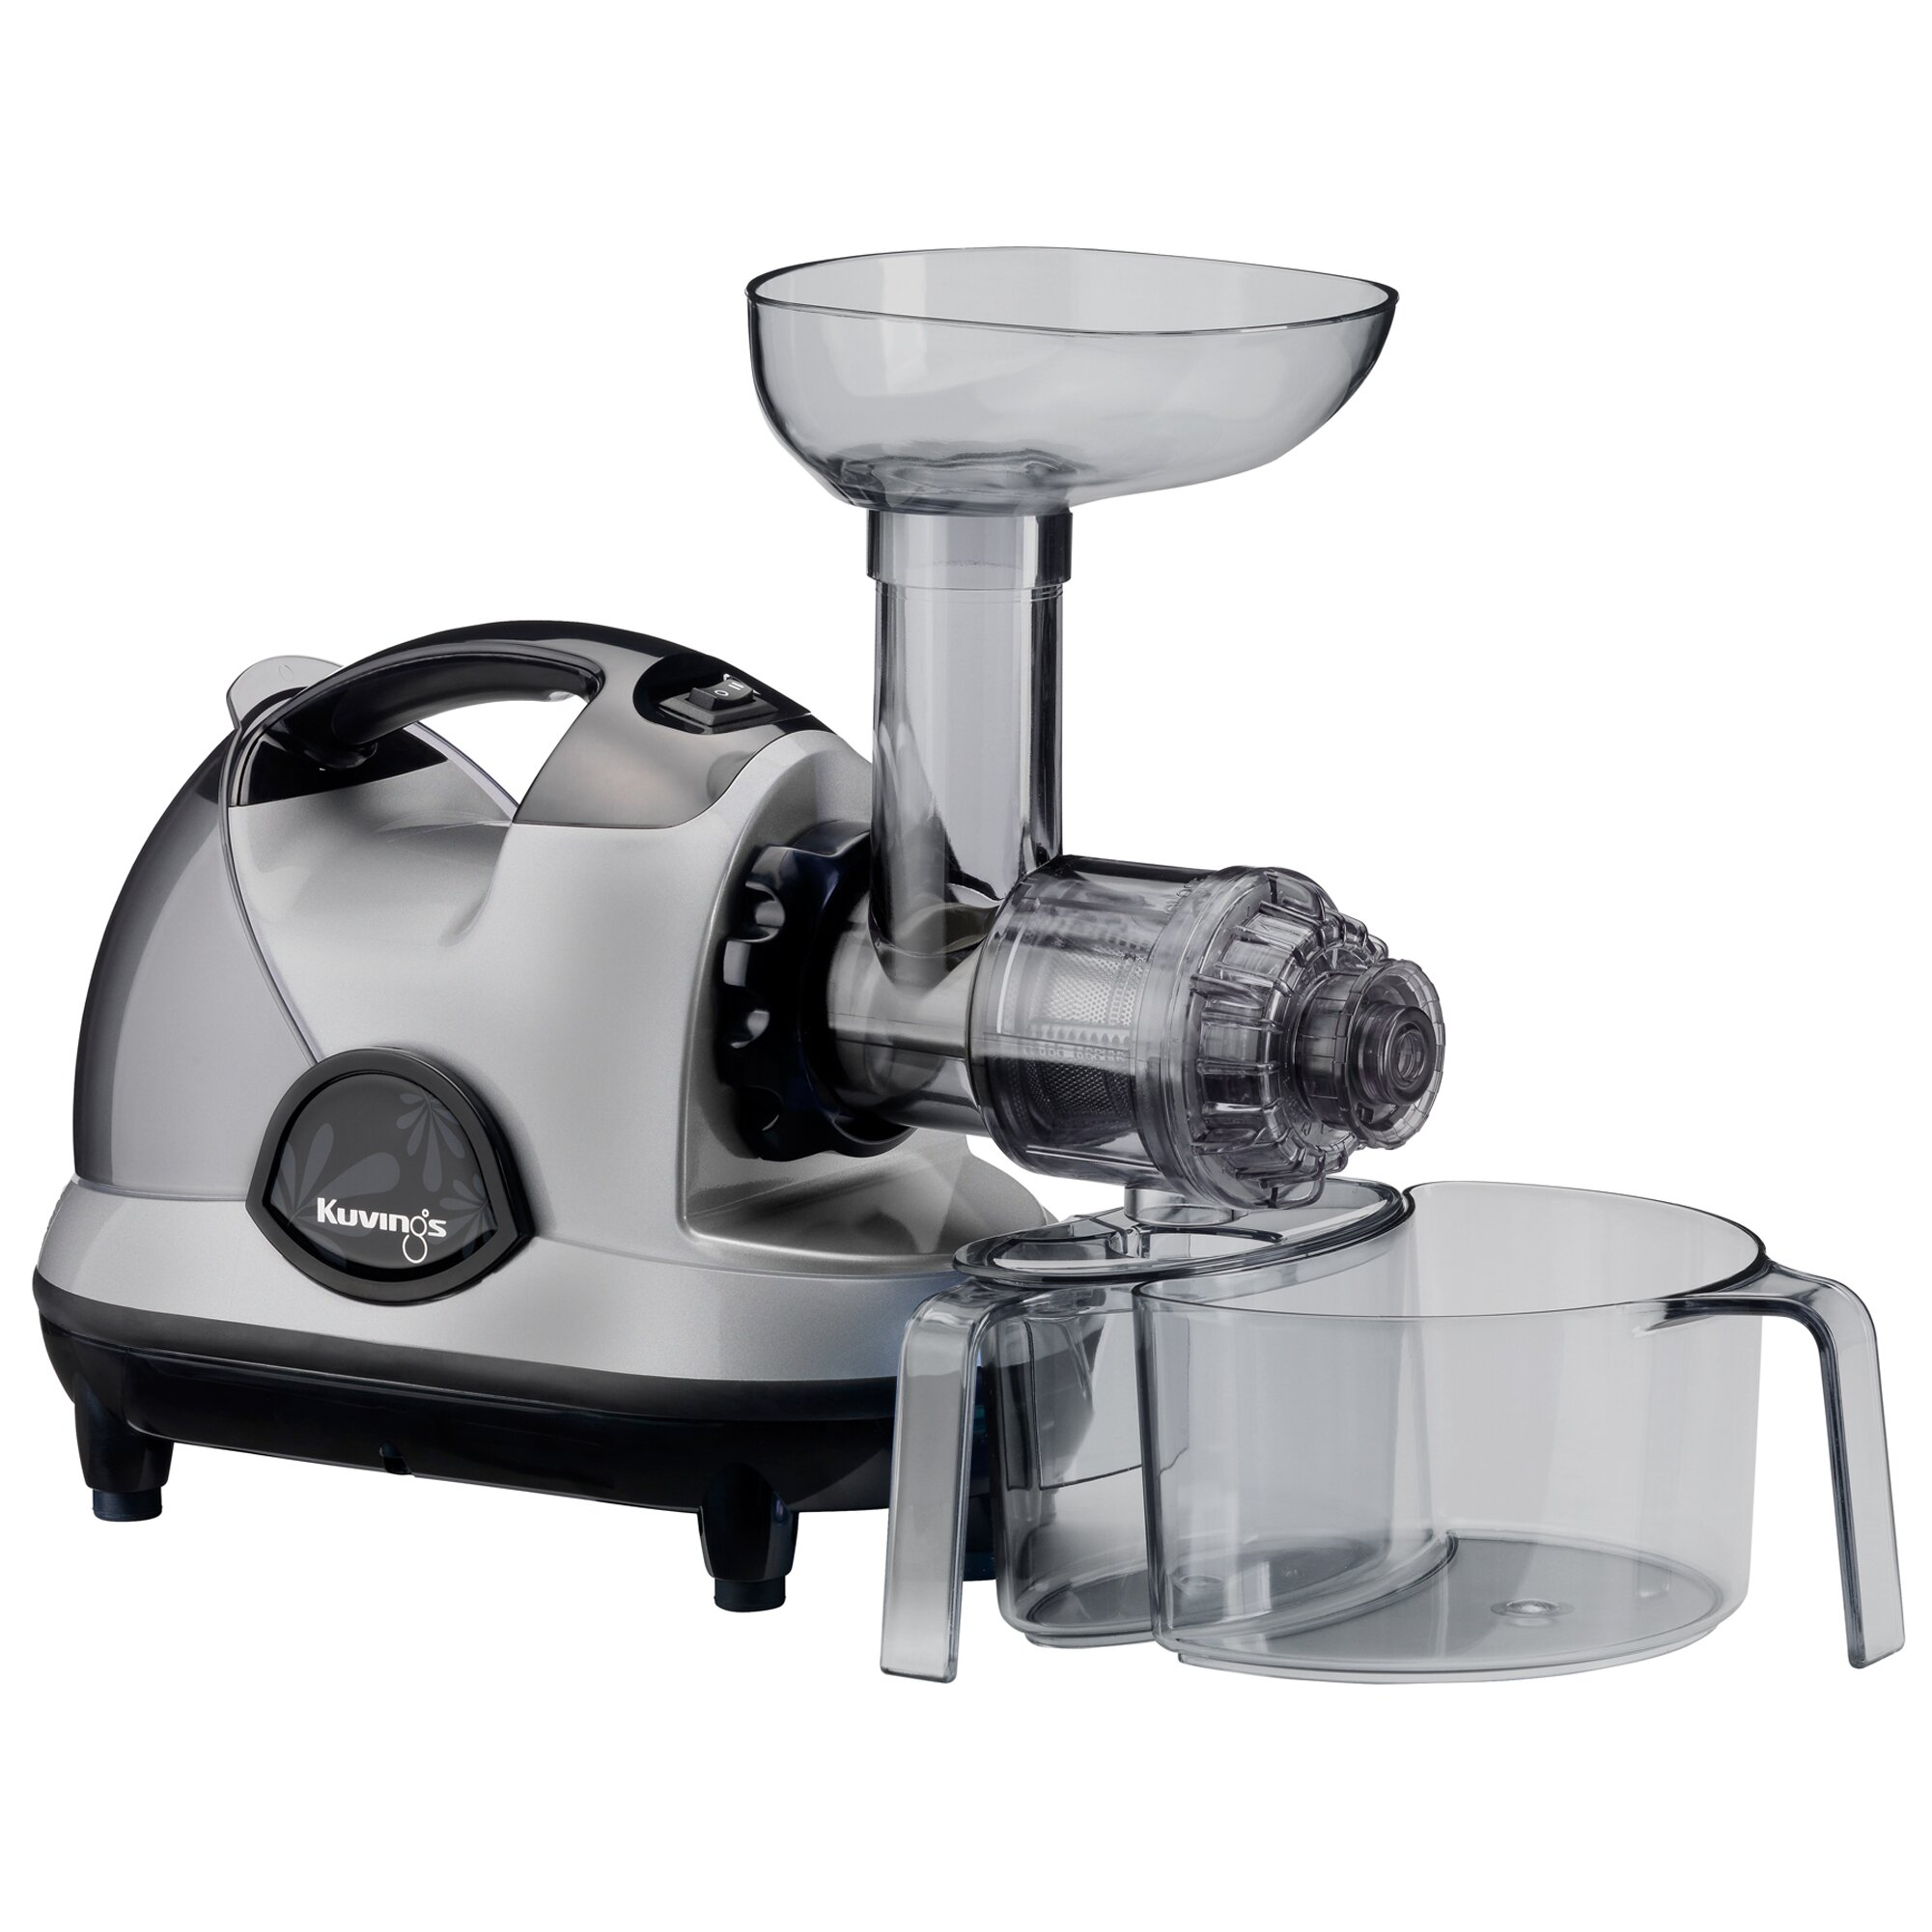 Ranbem Slow Juicer Review : KUvINGS Multi-Purpose Slow Juicer & Reviews Wayfair